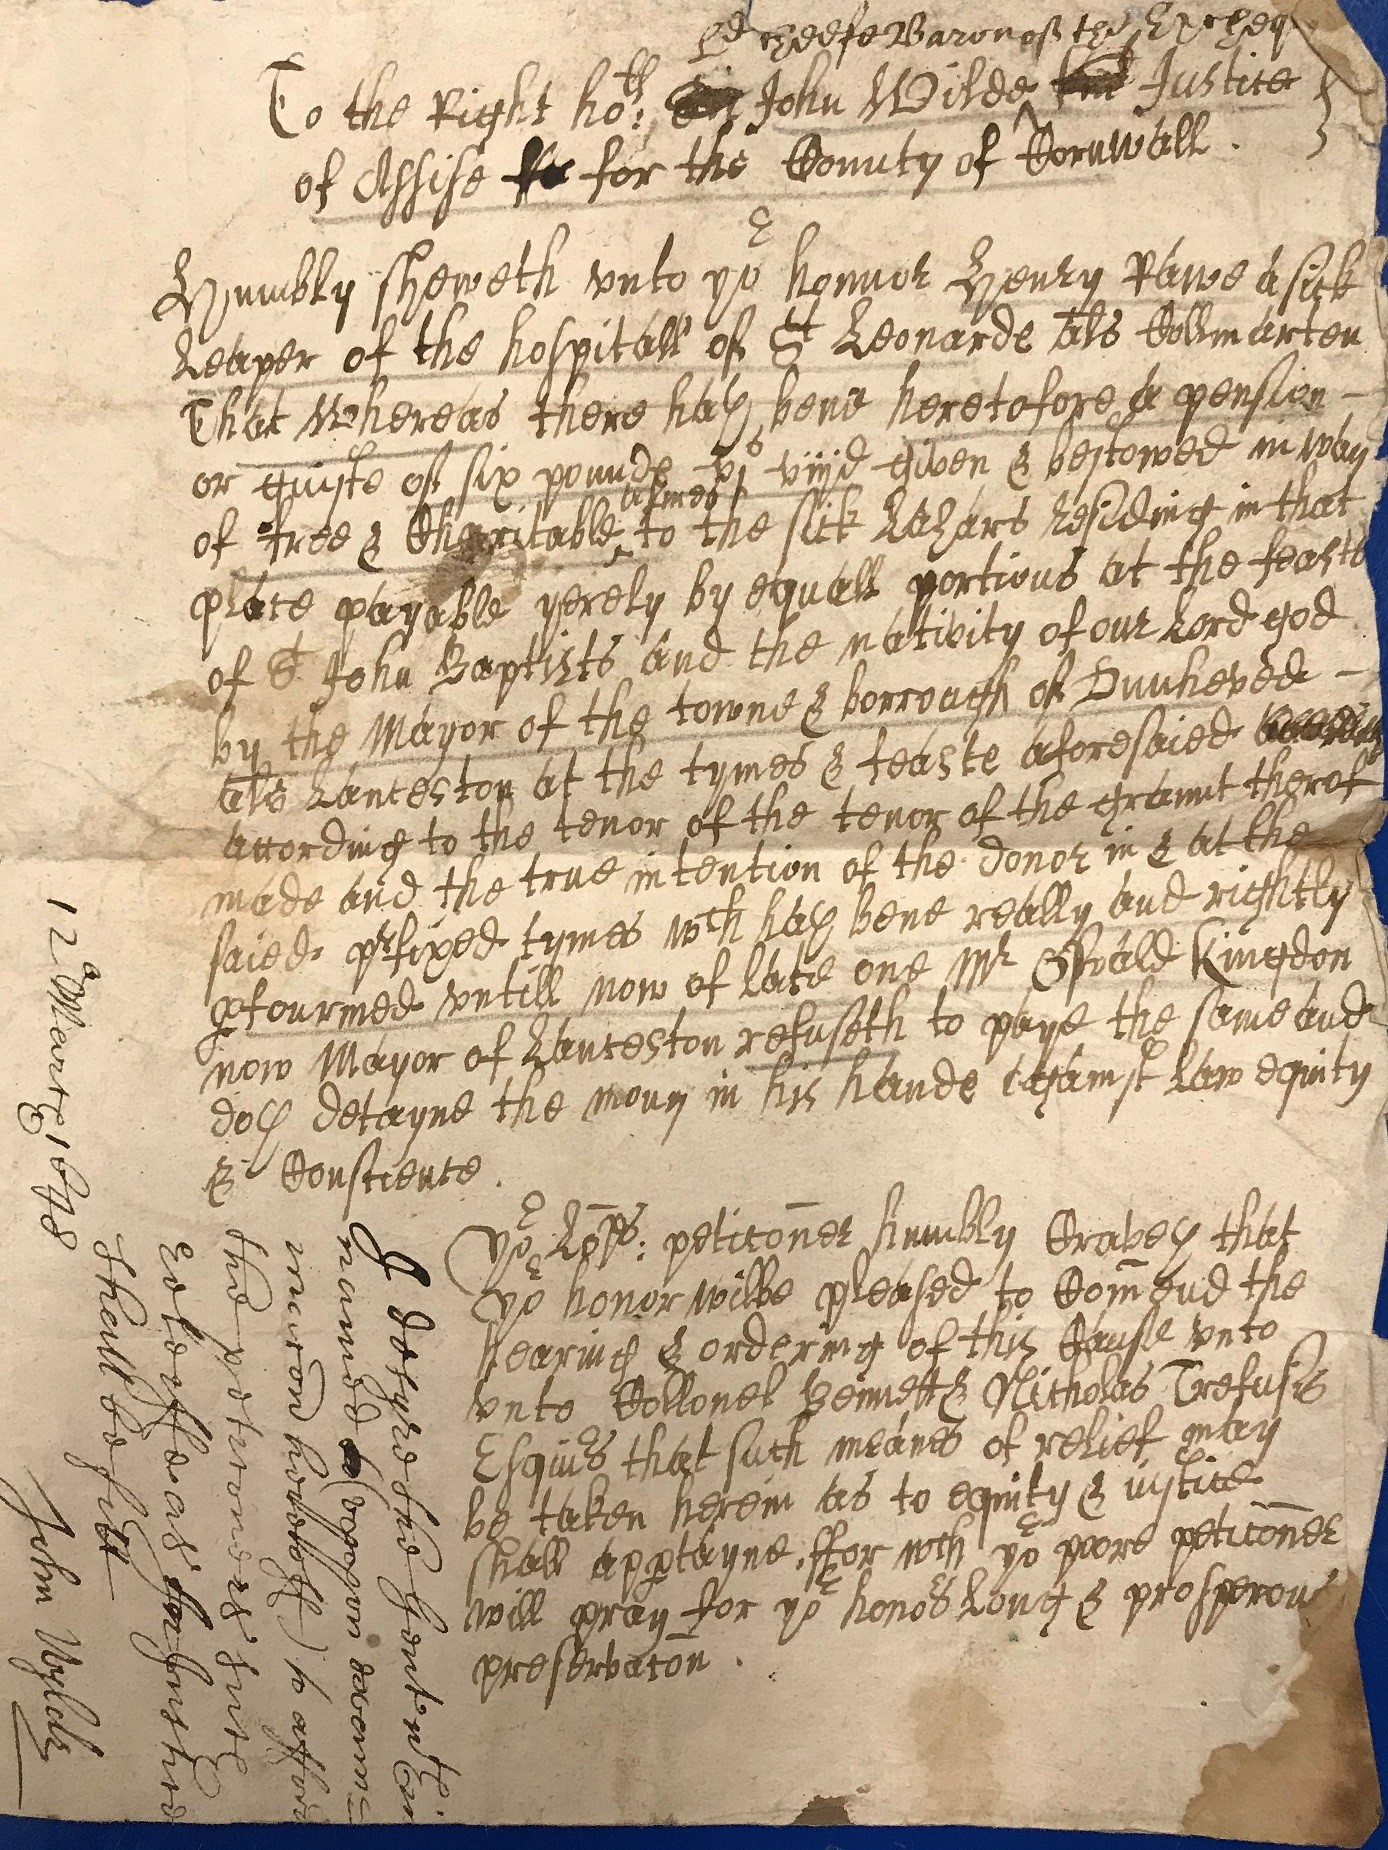 Scan of petition about leprosy from 1648